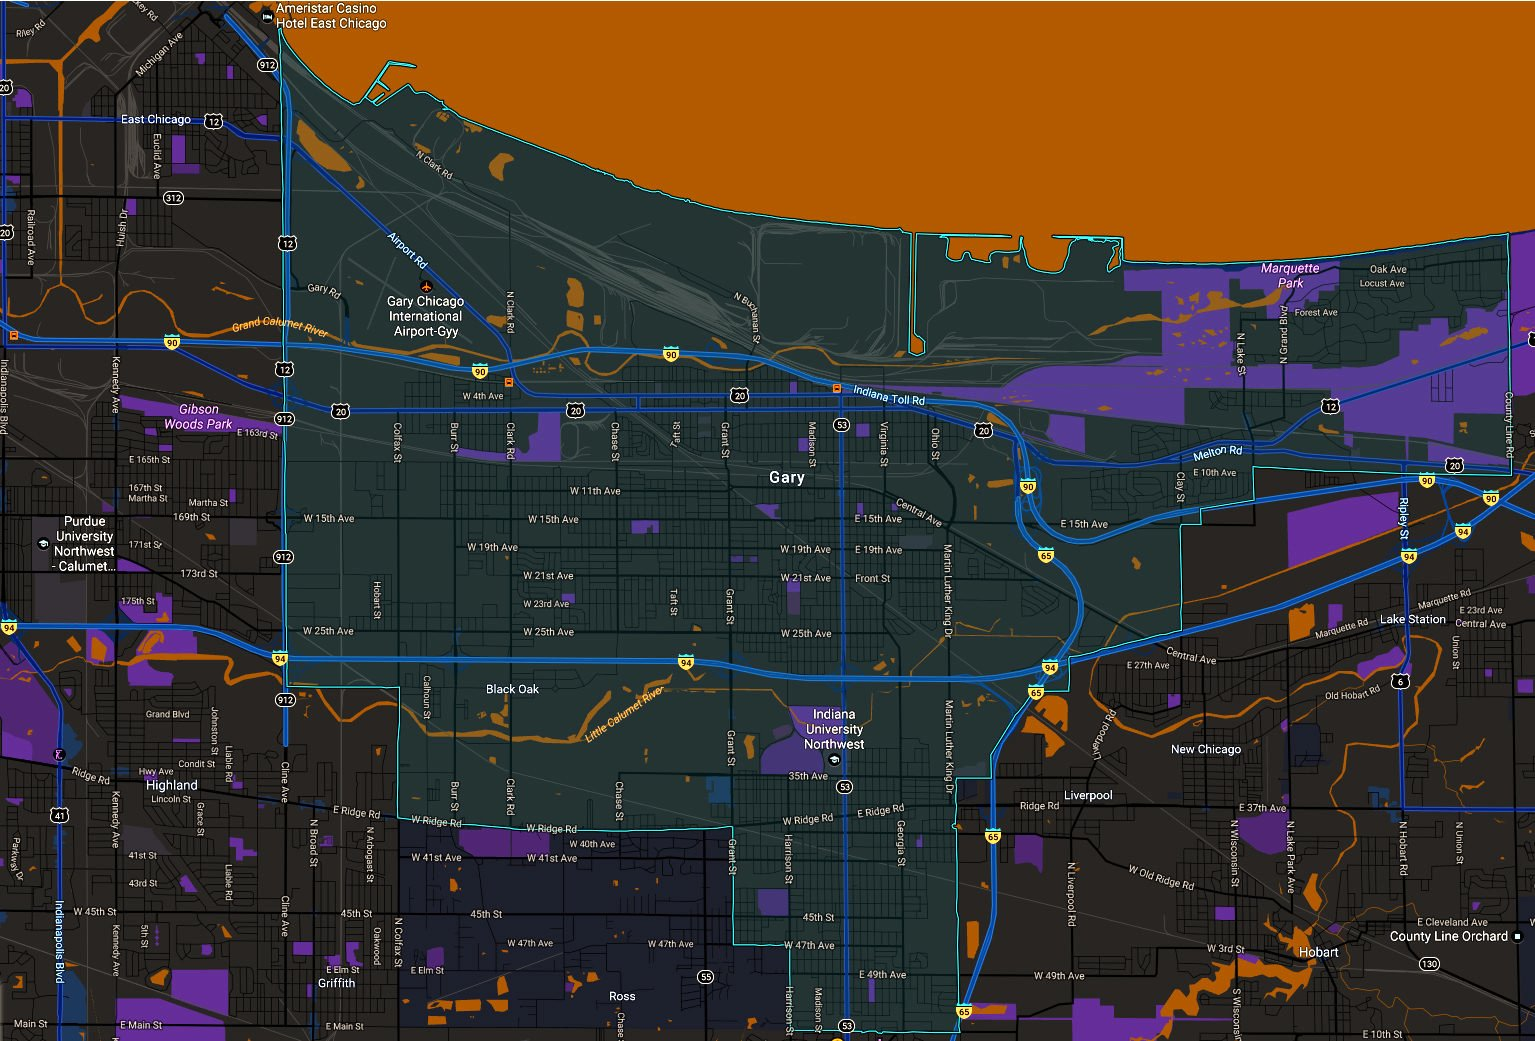 File:Gary Indiana map.jpg - The World Is A Vampire on indiana toll road map, fishers indiana map, northwest indiana map, decatur indiana map, burket indiana map, gas city indiana map, helmsburg indiana map, merrillville indiana map, hammond indiana map, kentland indiana map, michigan city indiana map, pittsburgh indiana map, indianapolis indiana map, south bend indiana map, detailed indiana road map, remington indiana map, greensboro indiana map, wisconsin indiana map, crown point indiana map, chicago map,